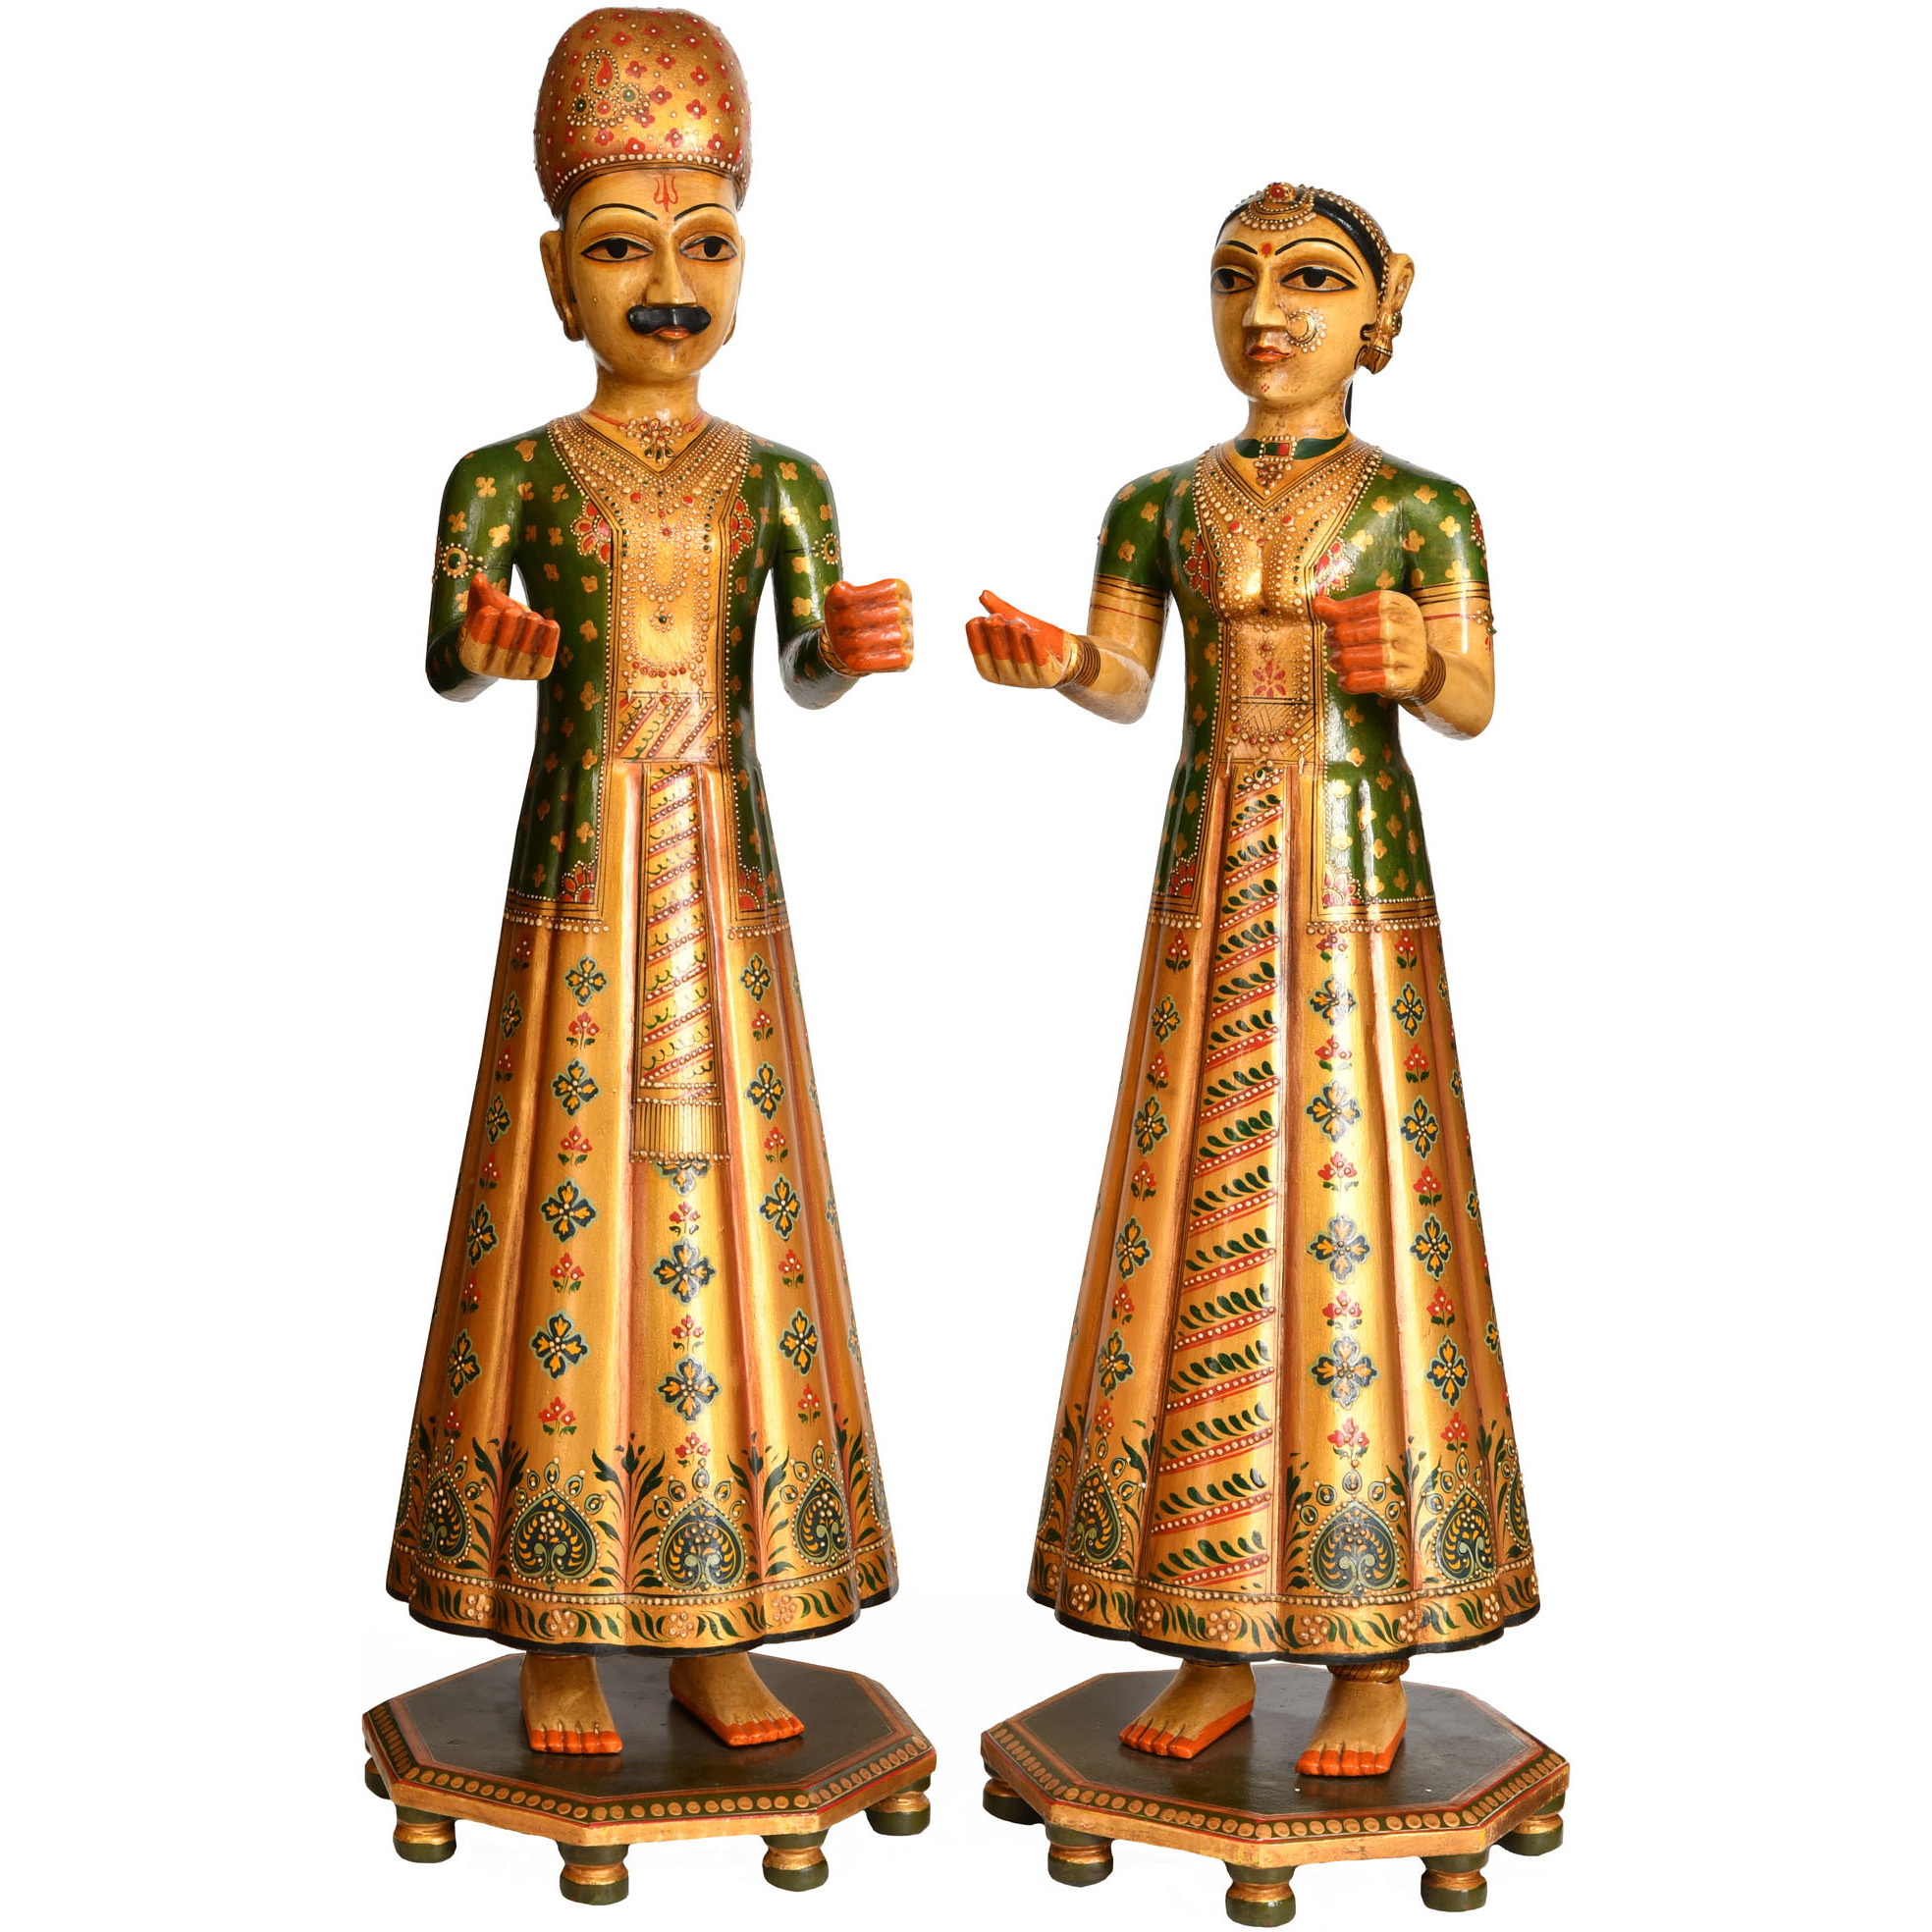 Traditional Man and Woman from Rajasthan